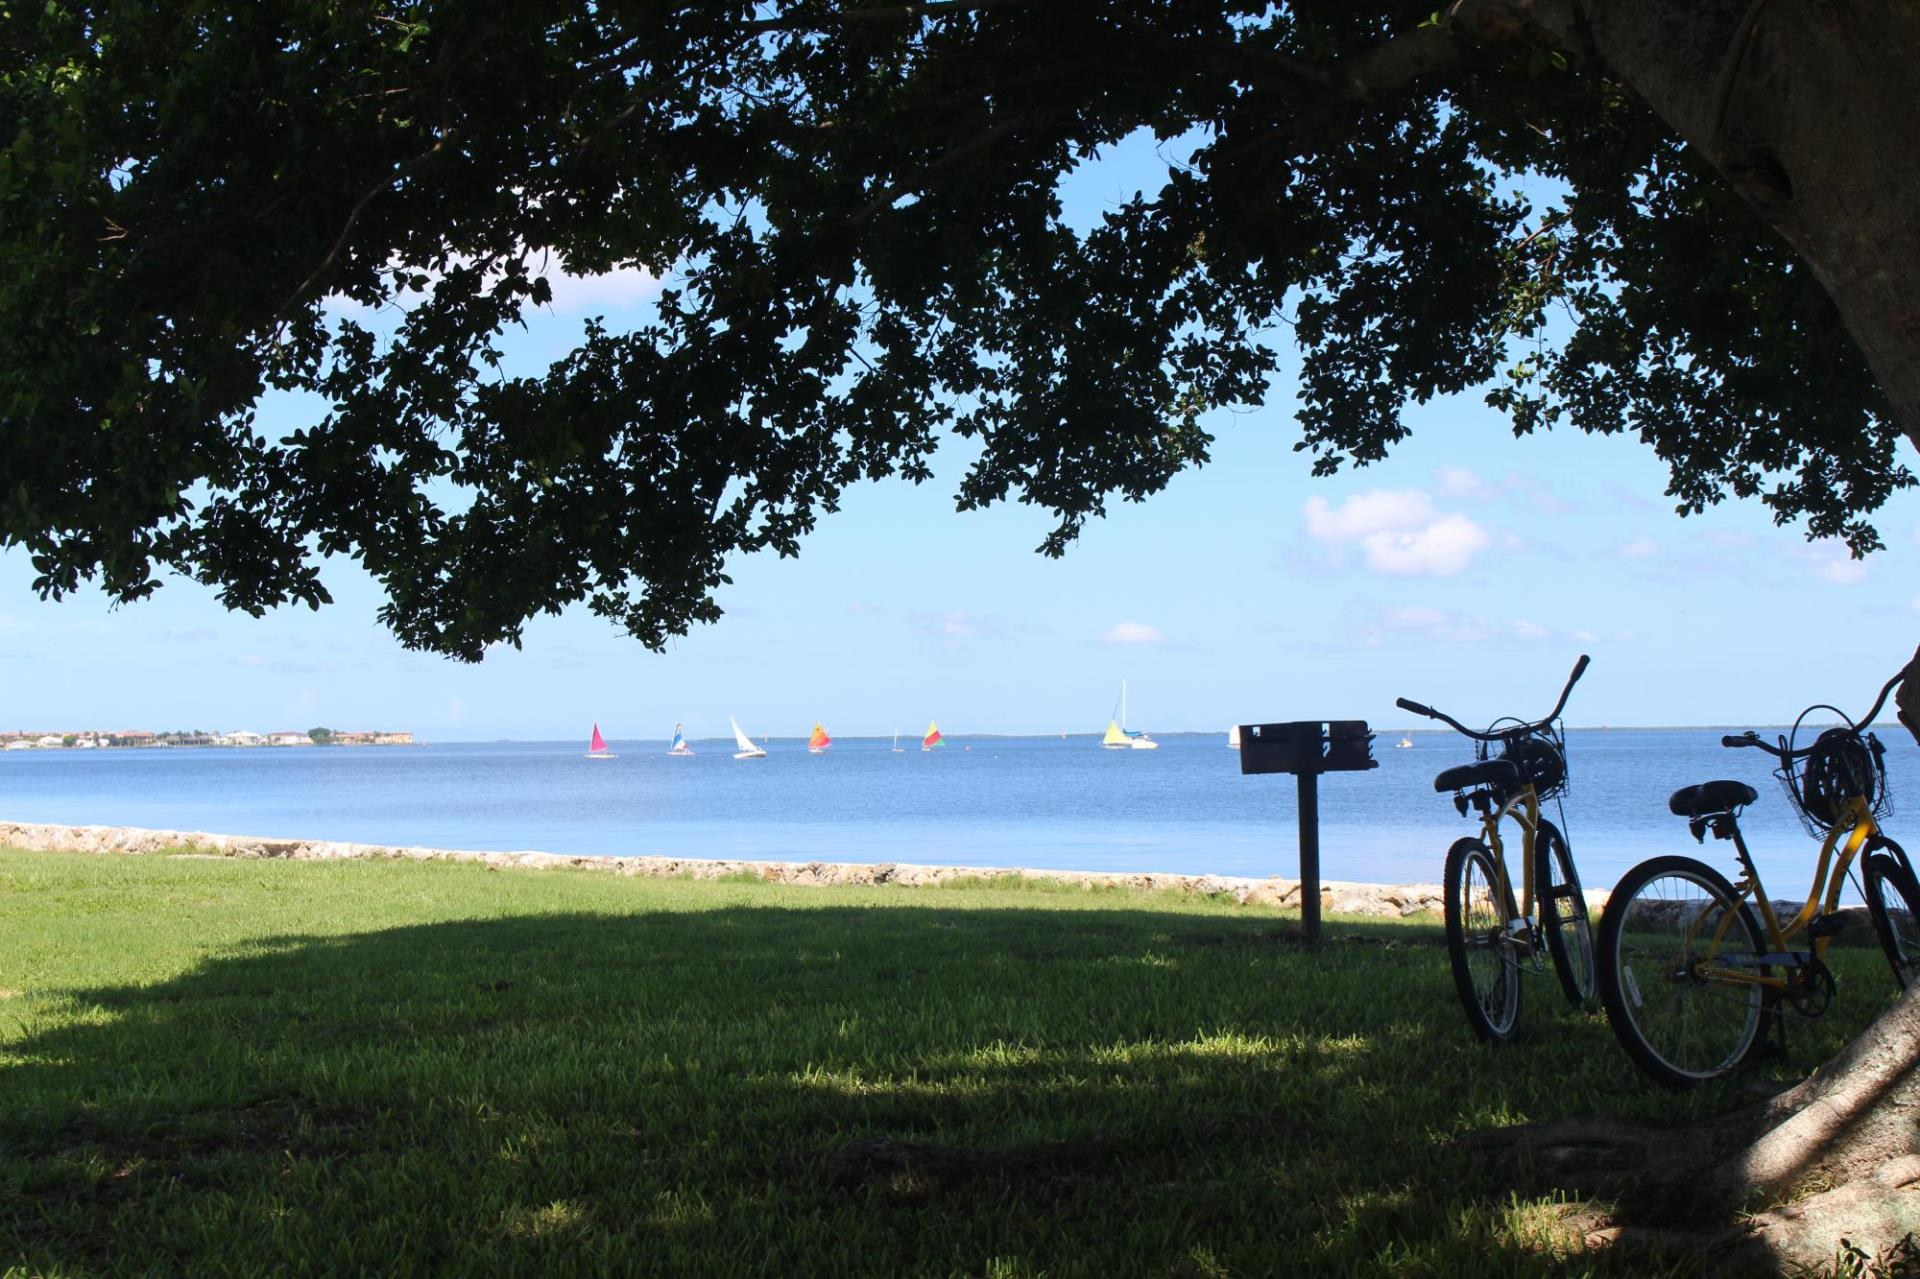 Gilchrist Park Harbor View